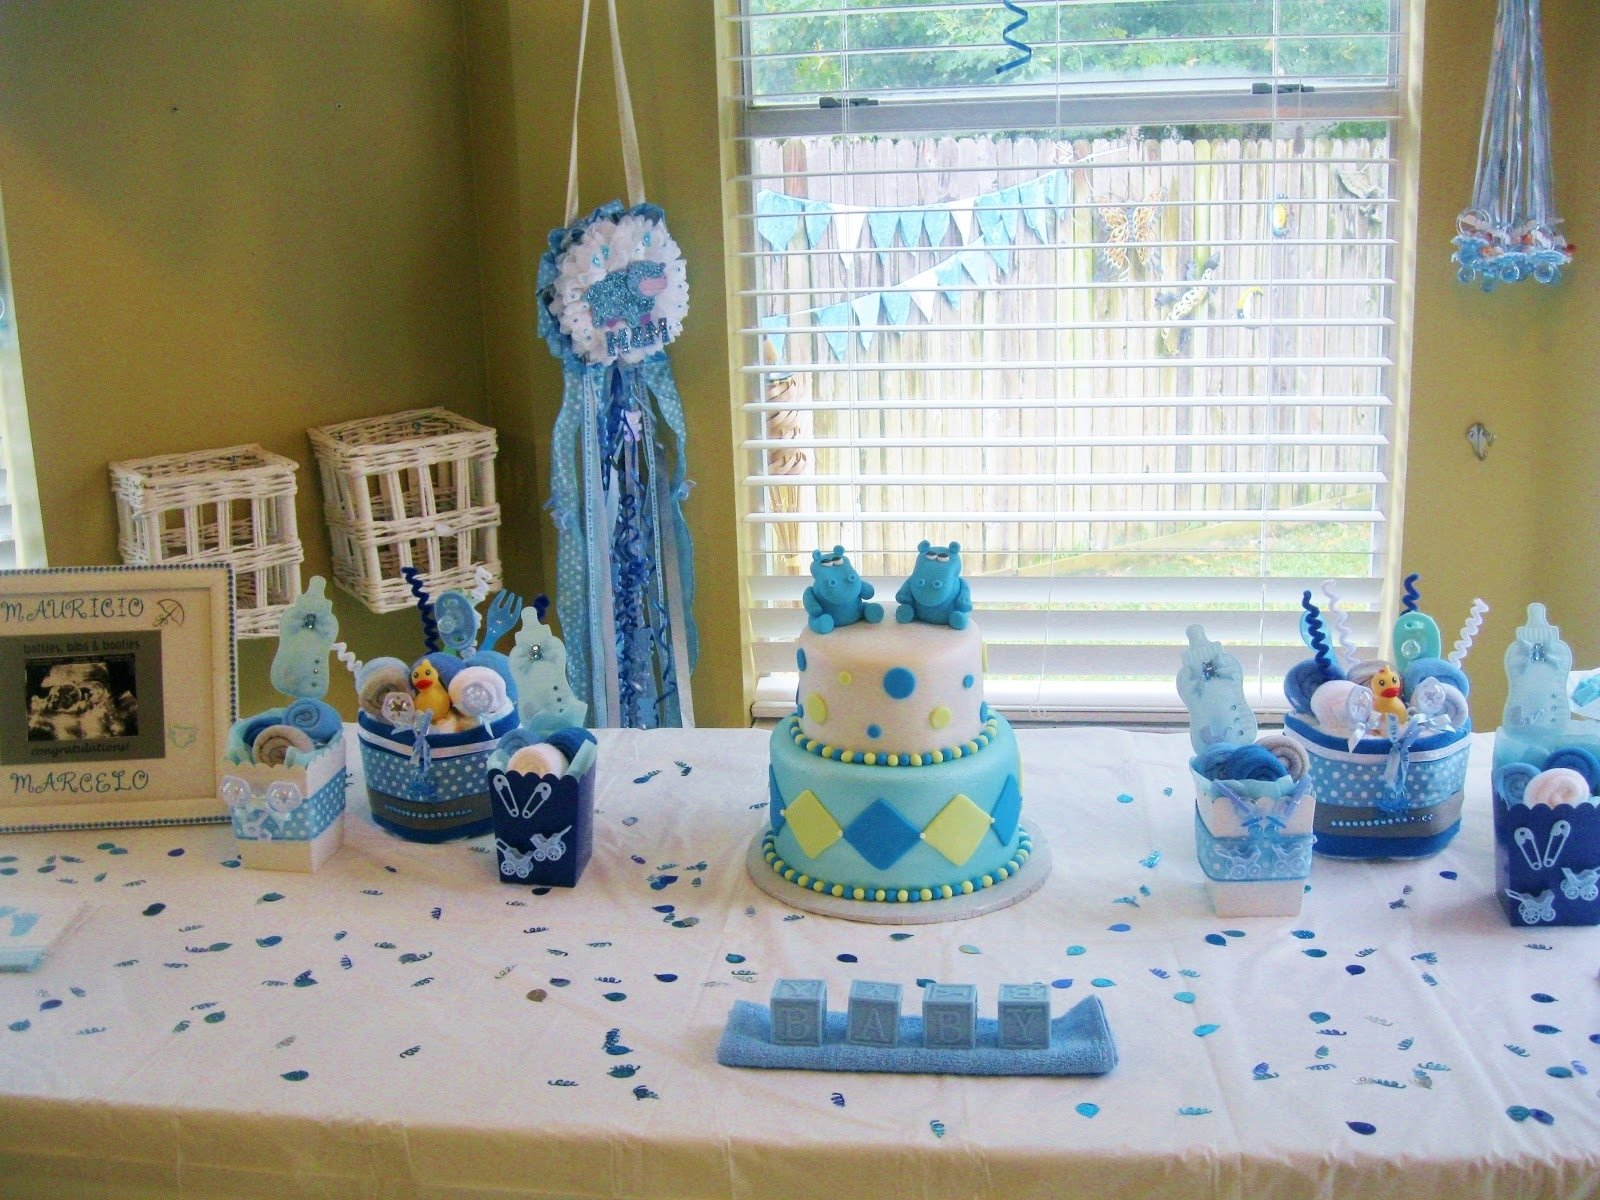 10 Wonderful Baby Shower Decoration Ideas For A Boy simple baby shower decoration ideas for boy e280a2 baby showers design 2020